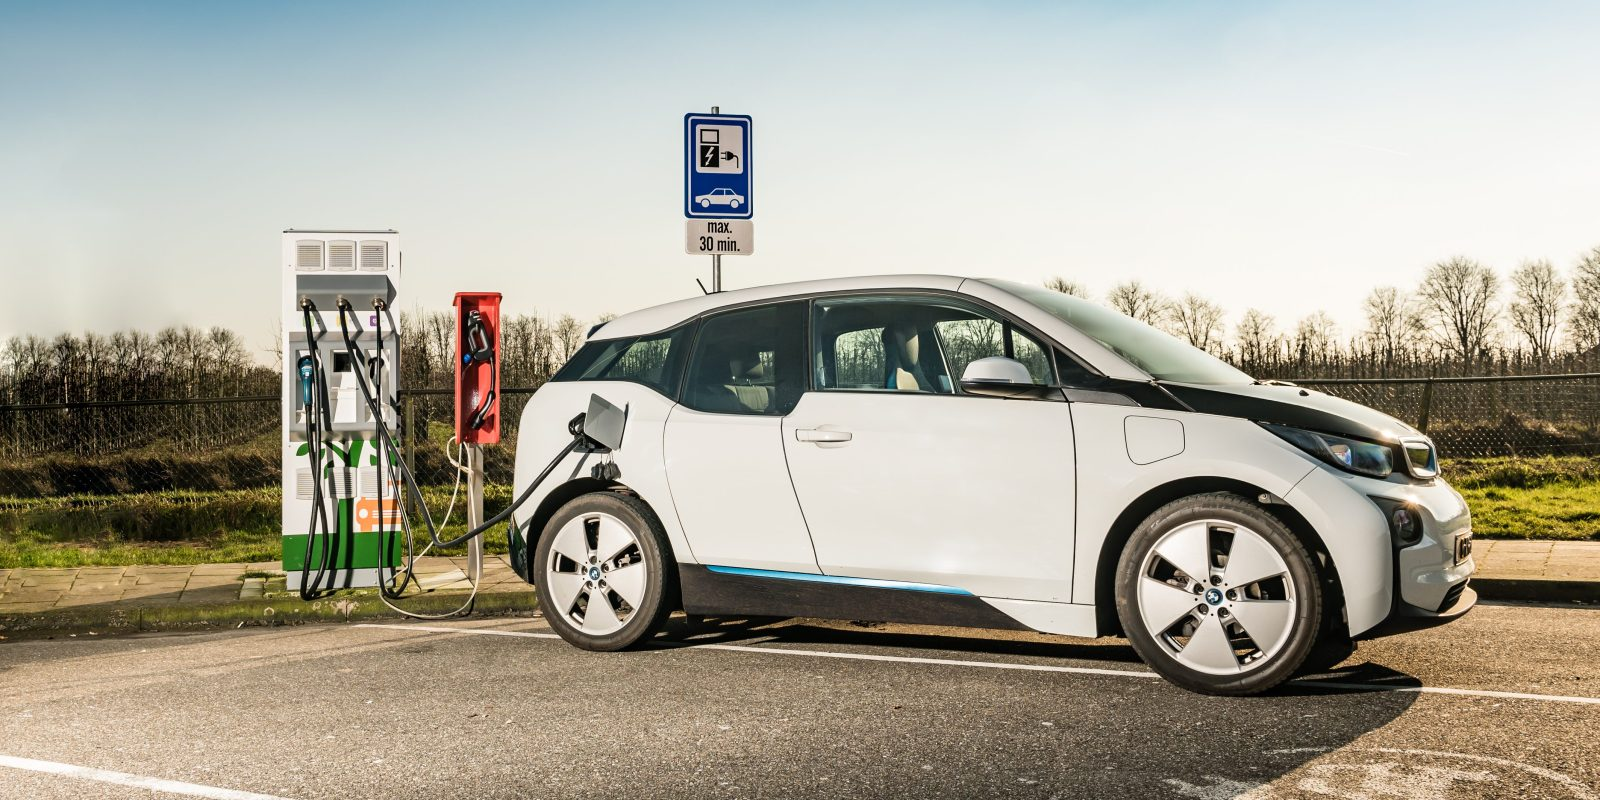 Best Car Transport Companies >> Shell to start deploying fast-charging EV stations with Allego at its gas stations - Electrek